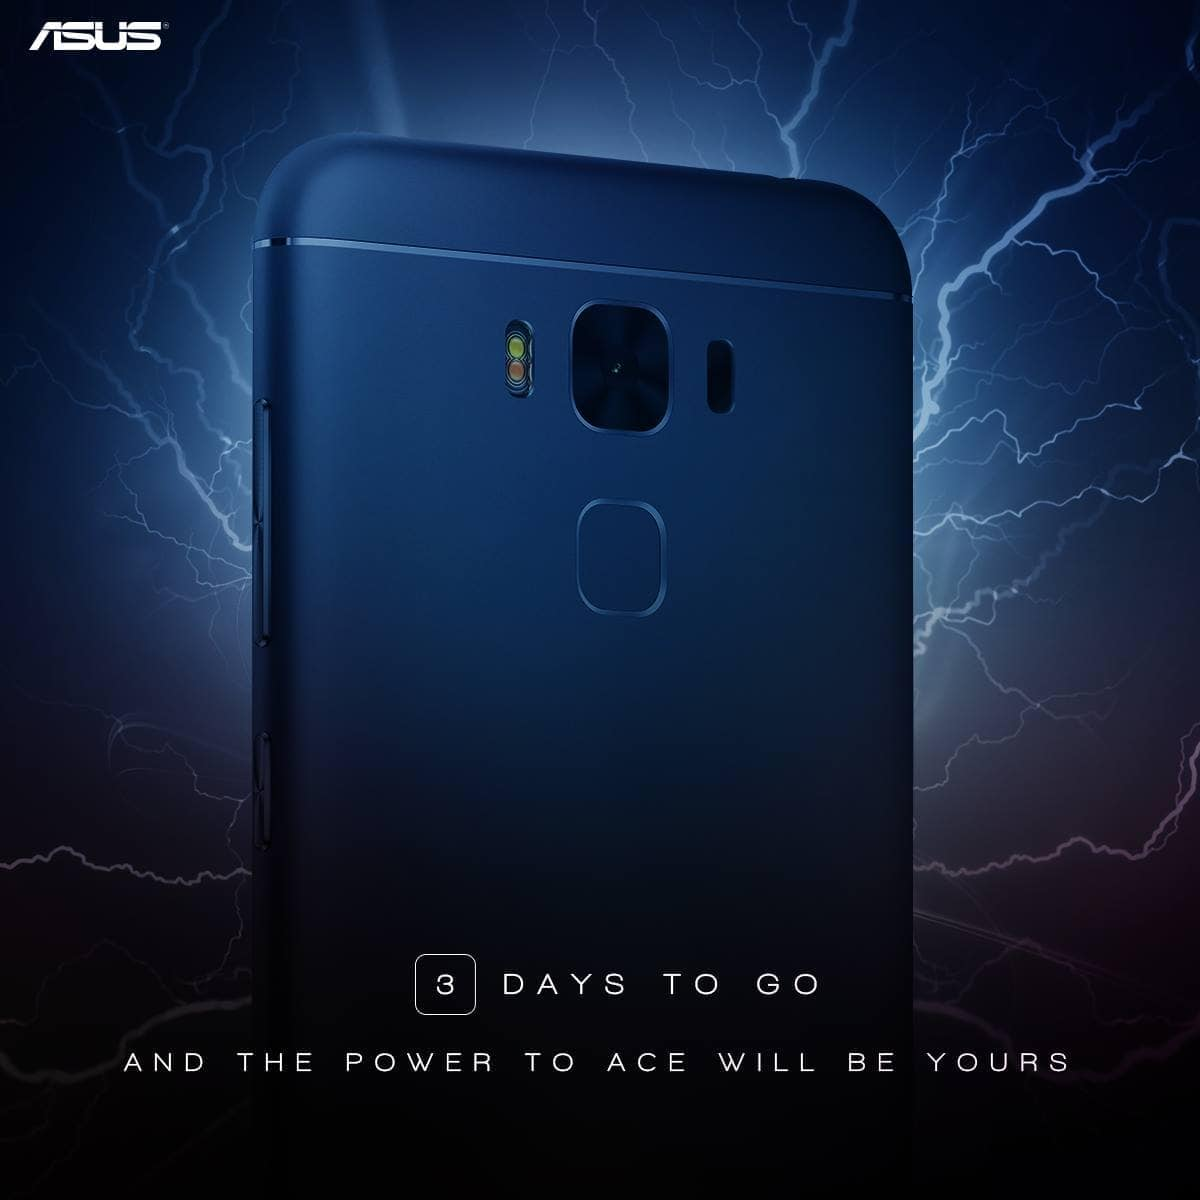 asus-india-new-launch-on-9th-nov